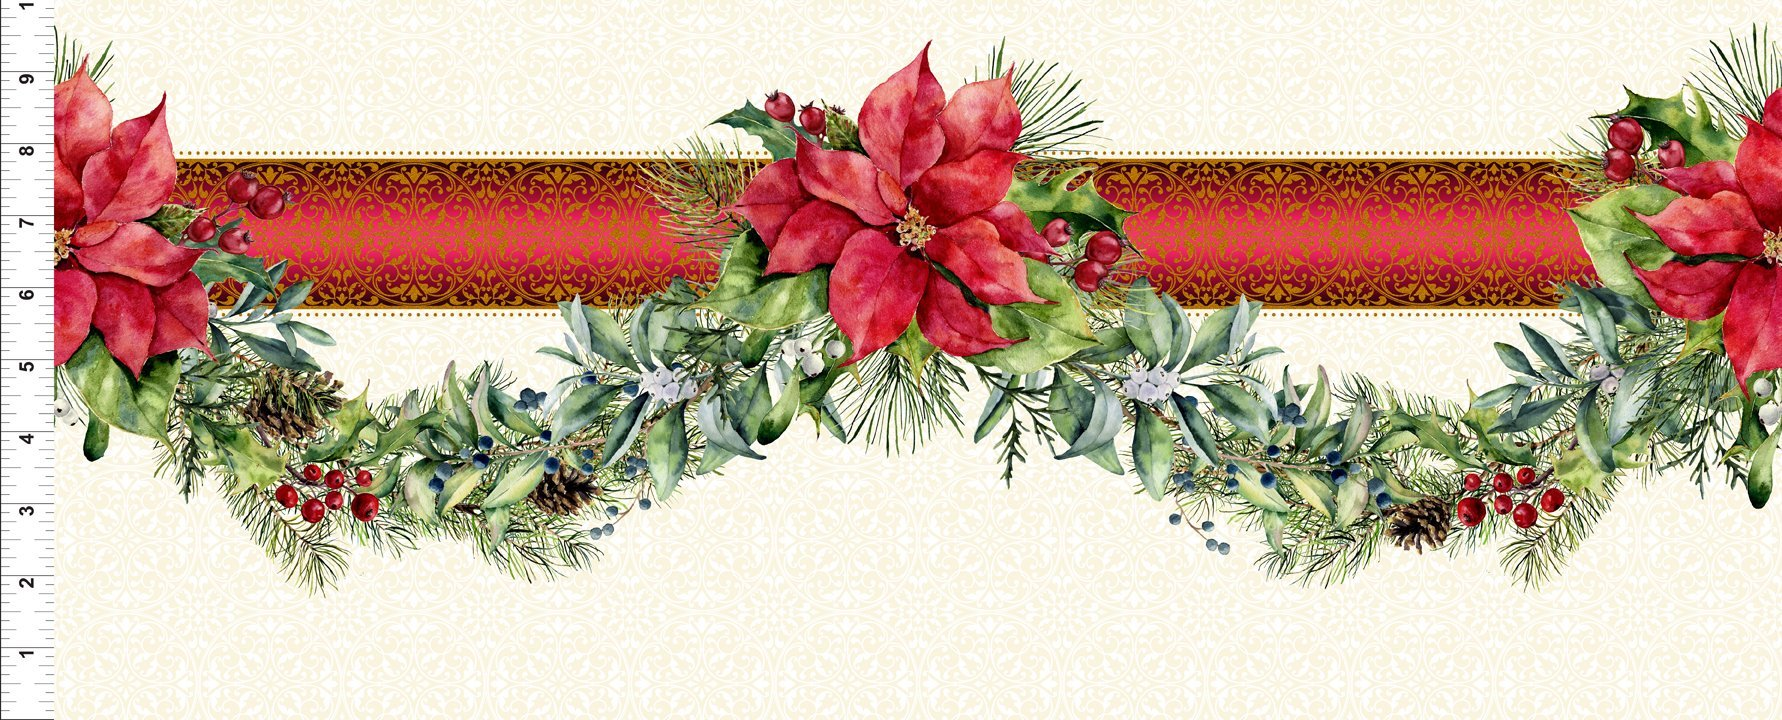 2APW1 Red/Green Swag Border - A Poinsettia Winter by Jason Yenter